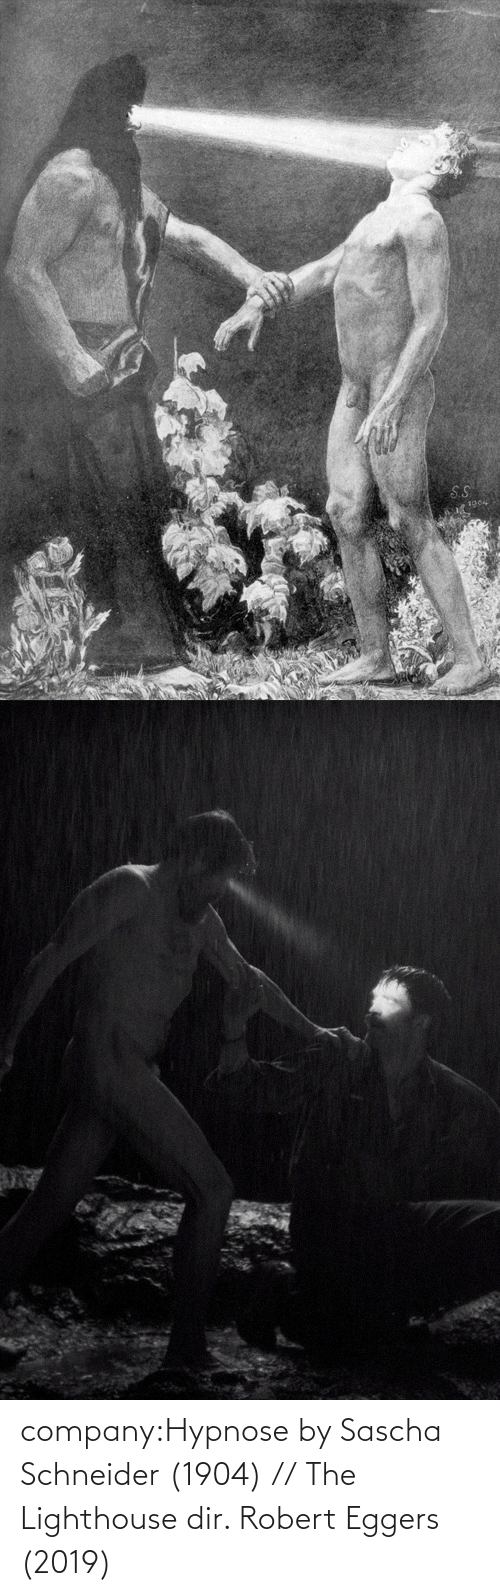 company: S.S  1904 company:Hypnose by Sascha Schneider (1904) // The Lighthouse dir. Robert Eggers (2019)